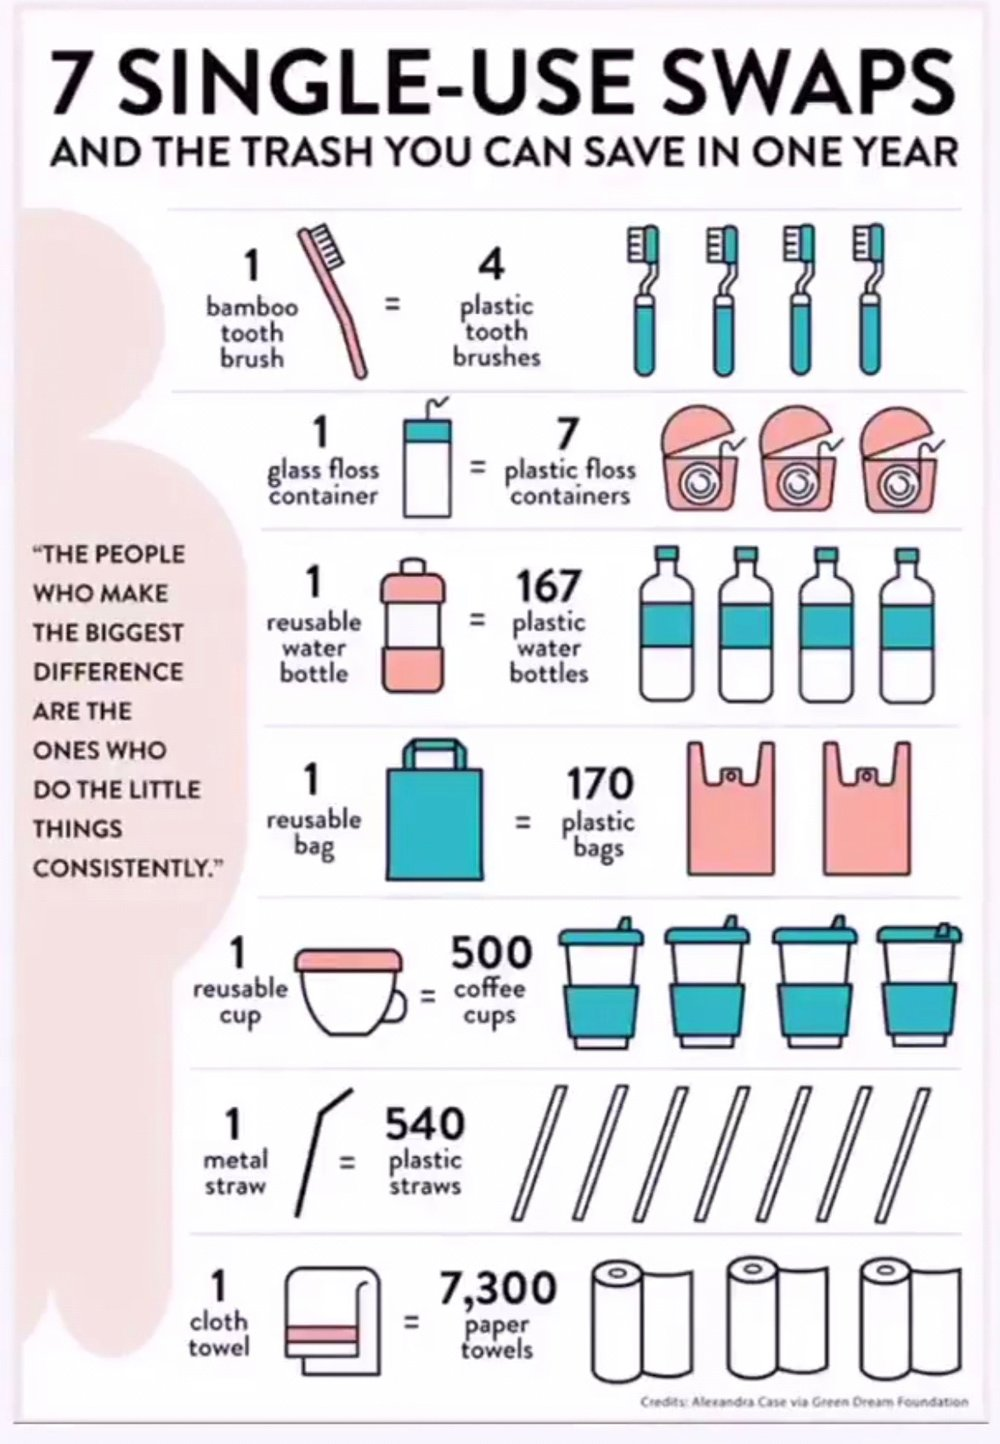 7 Single-Use Swaps